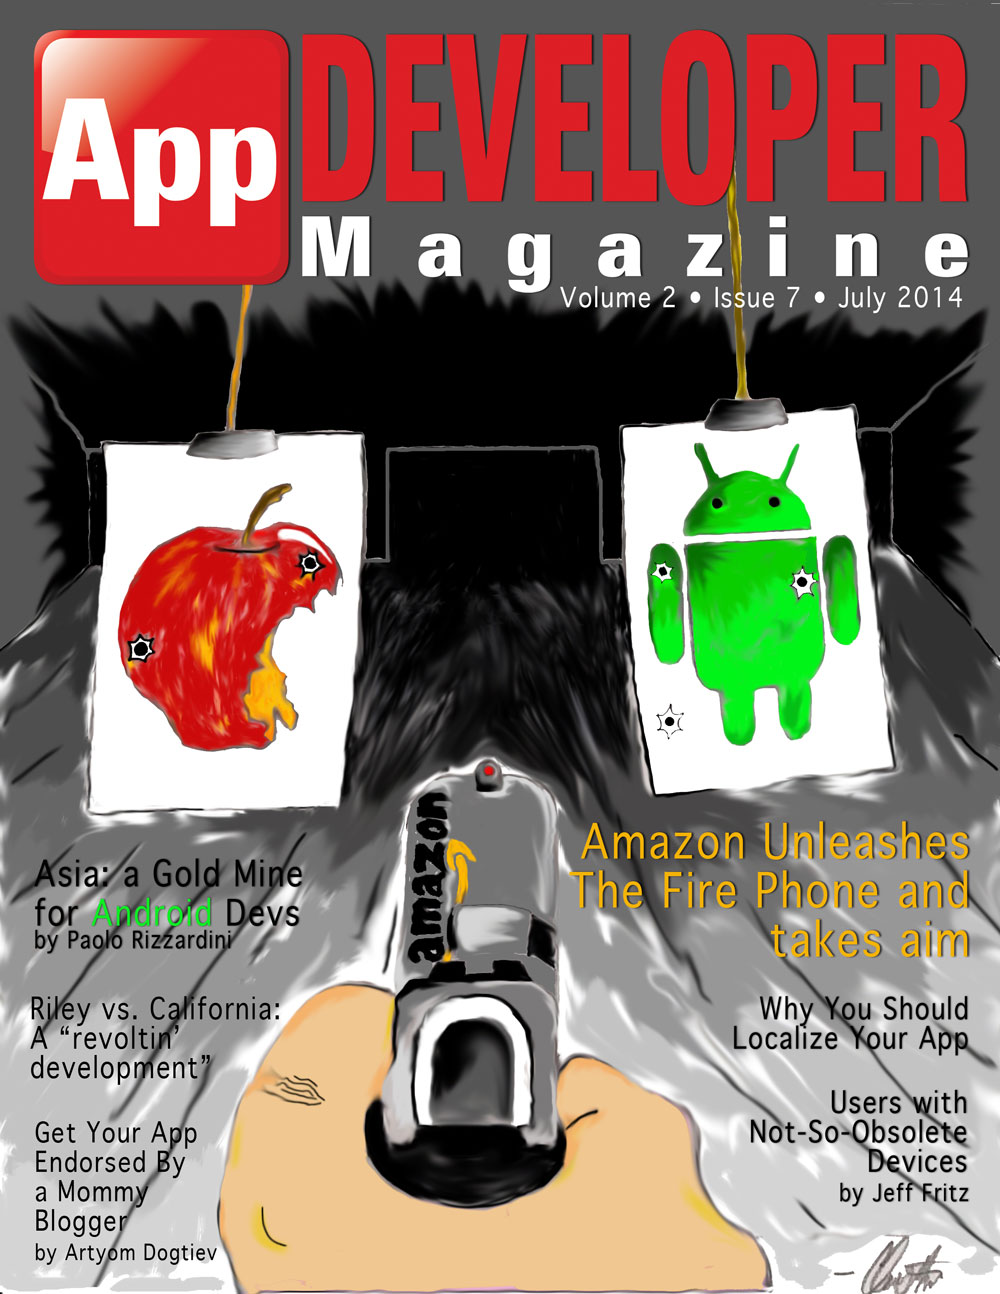 App Developer Magazine July 2014